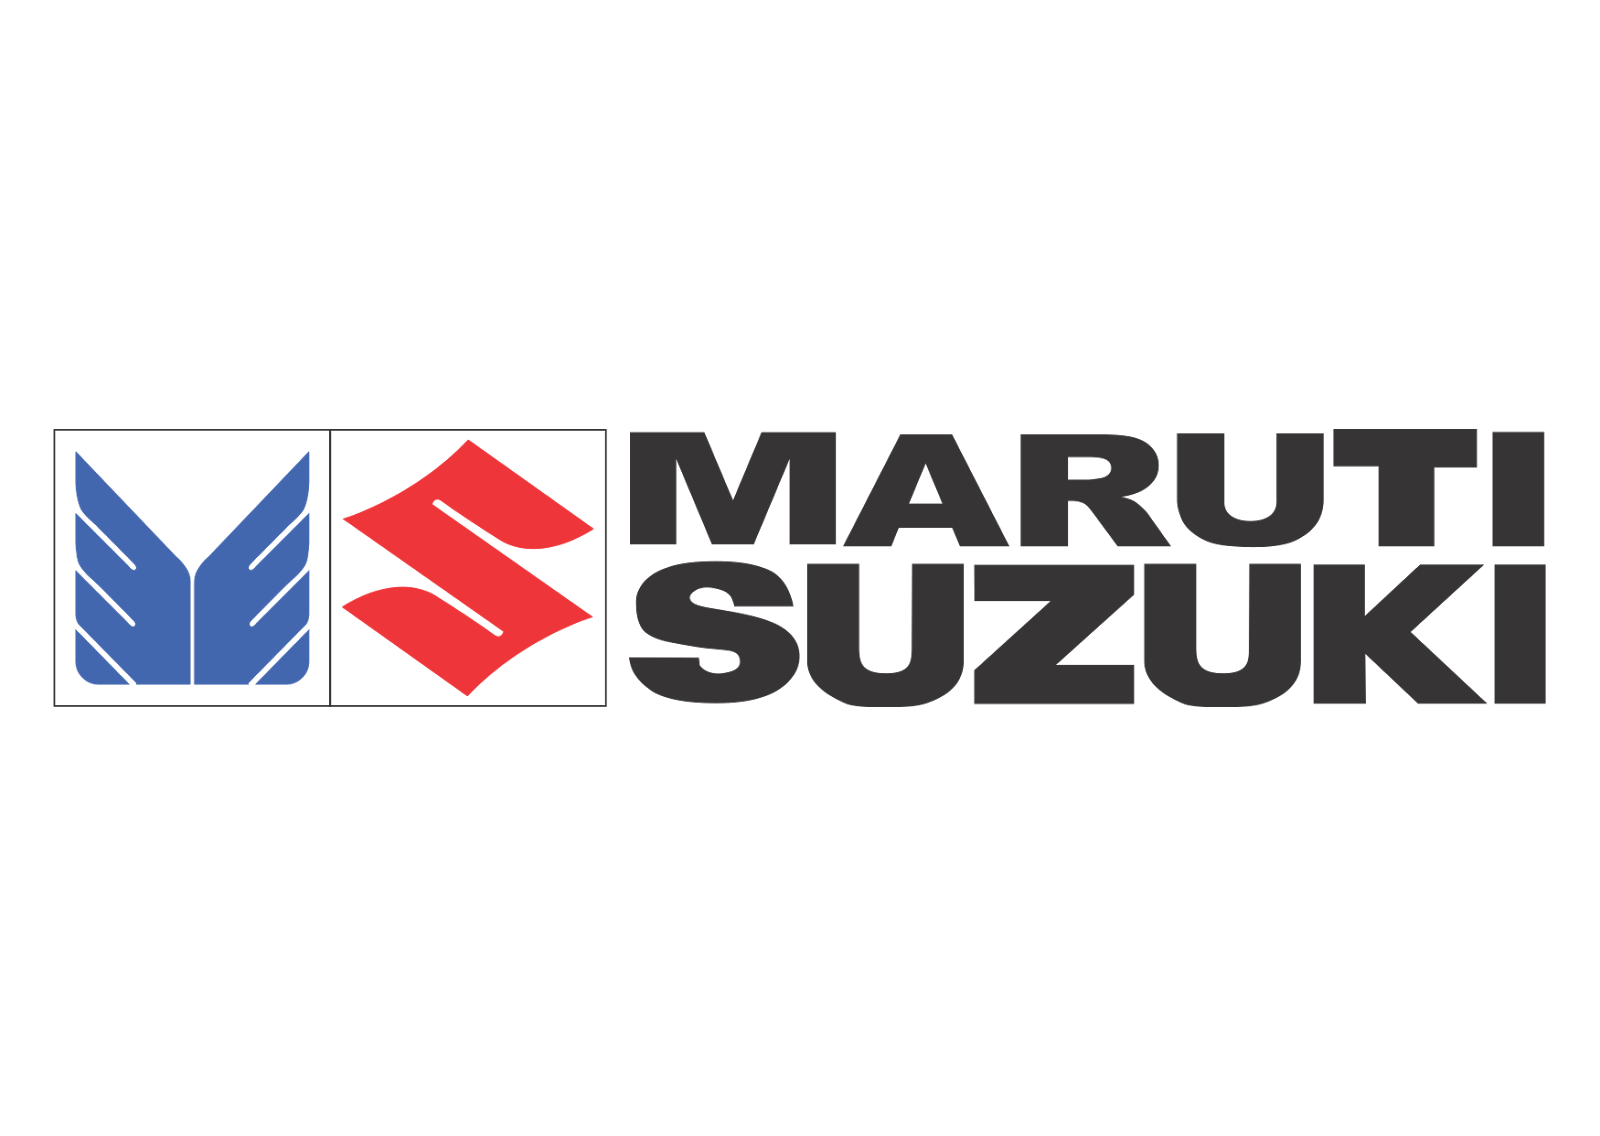 maruti-suzuki- customer care phone number